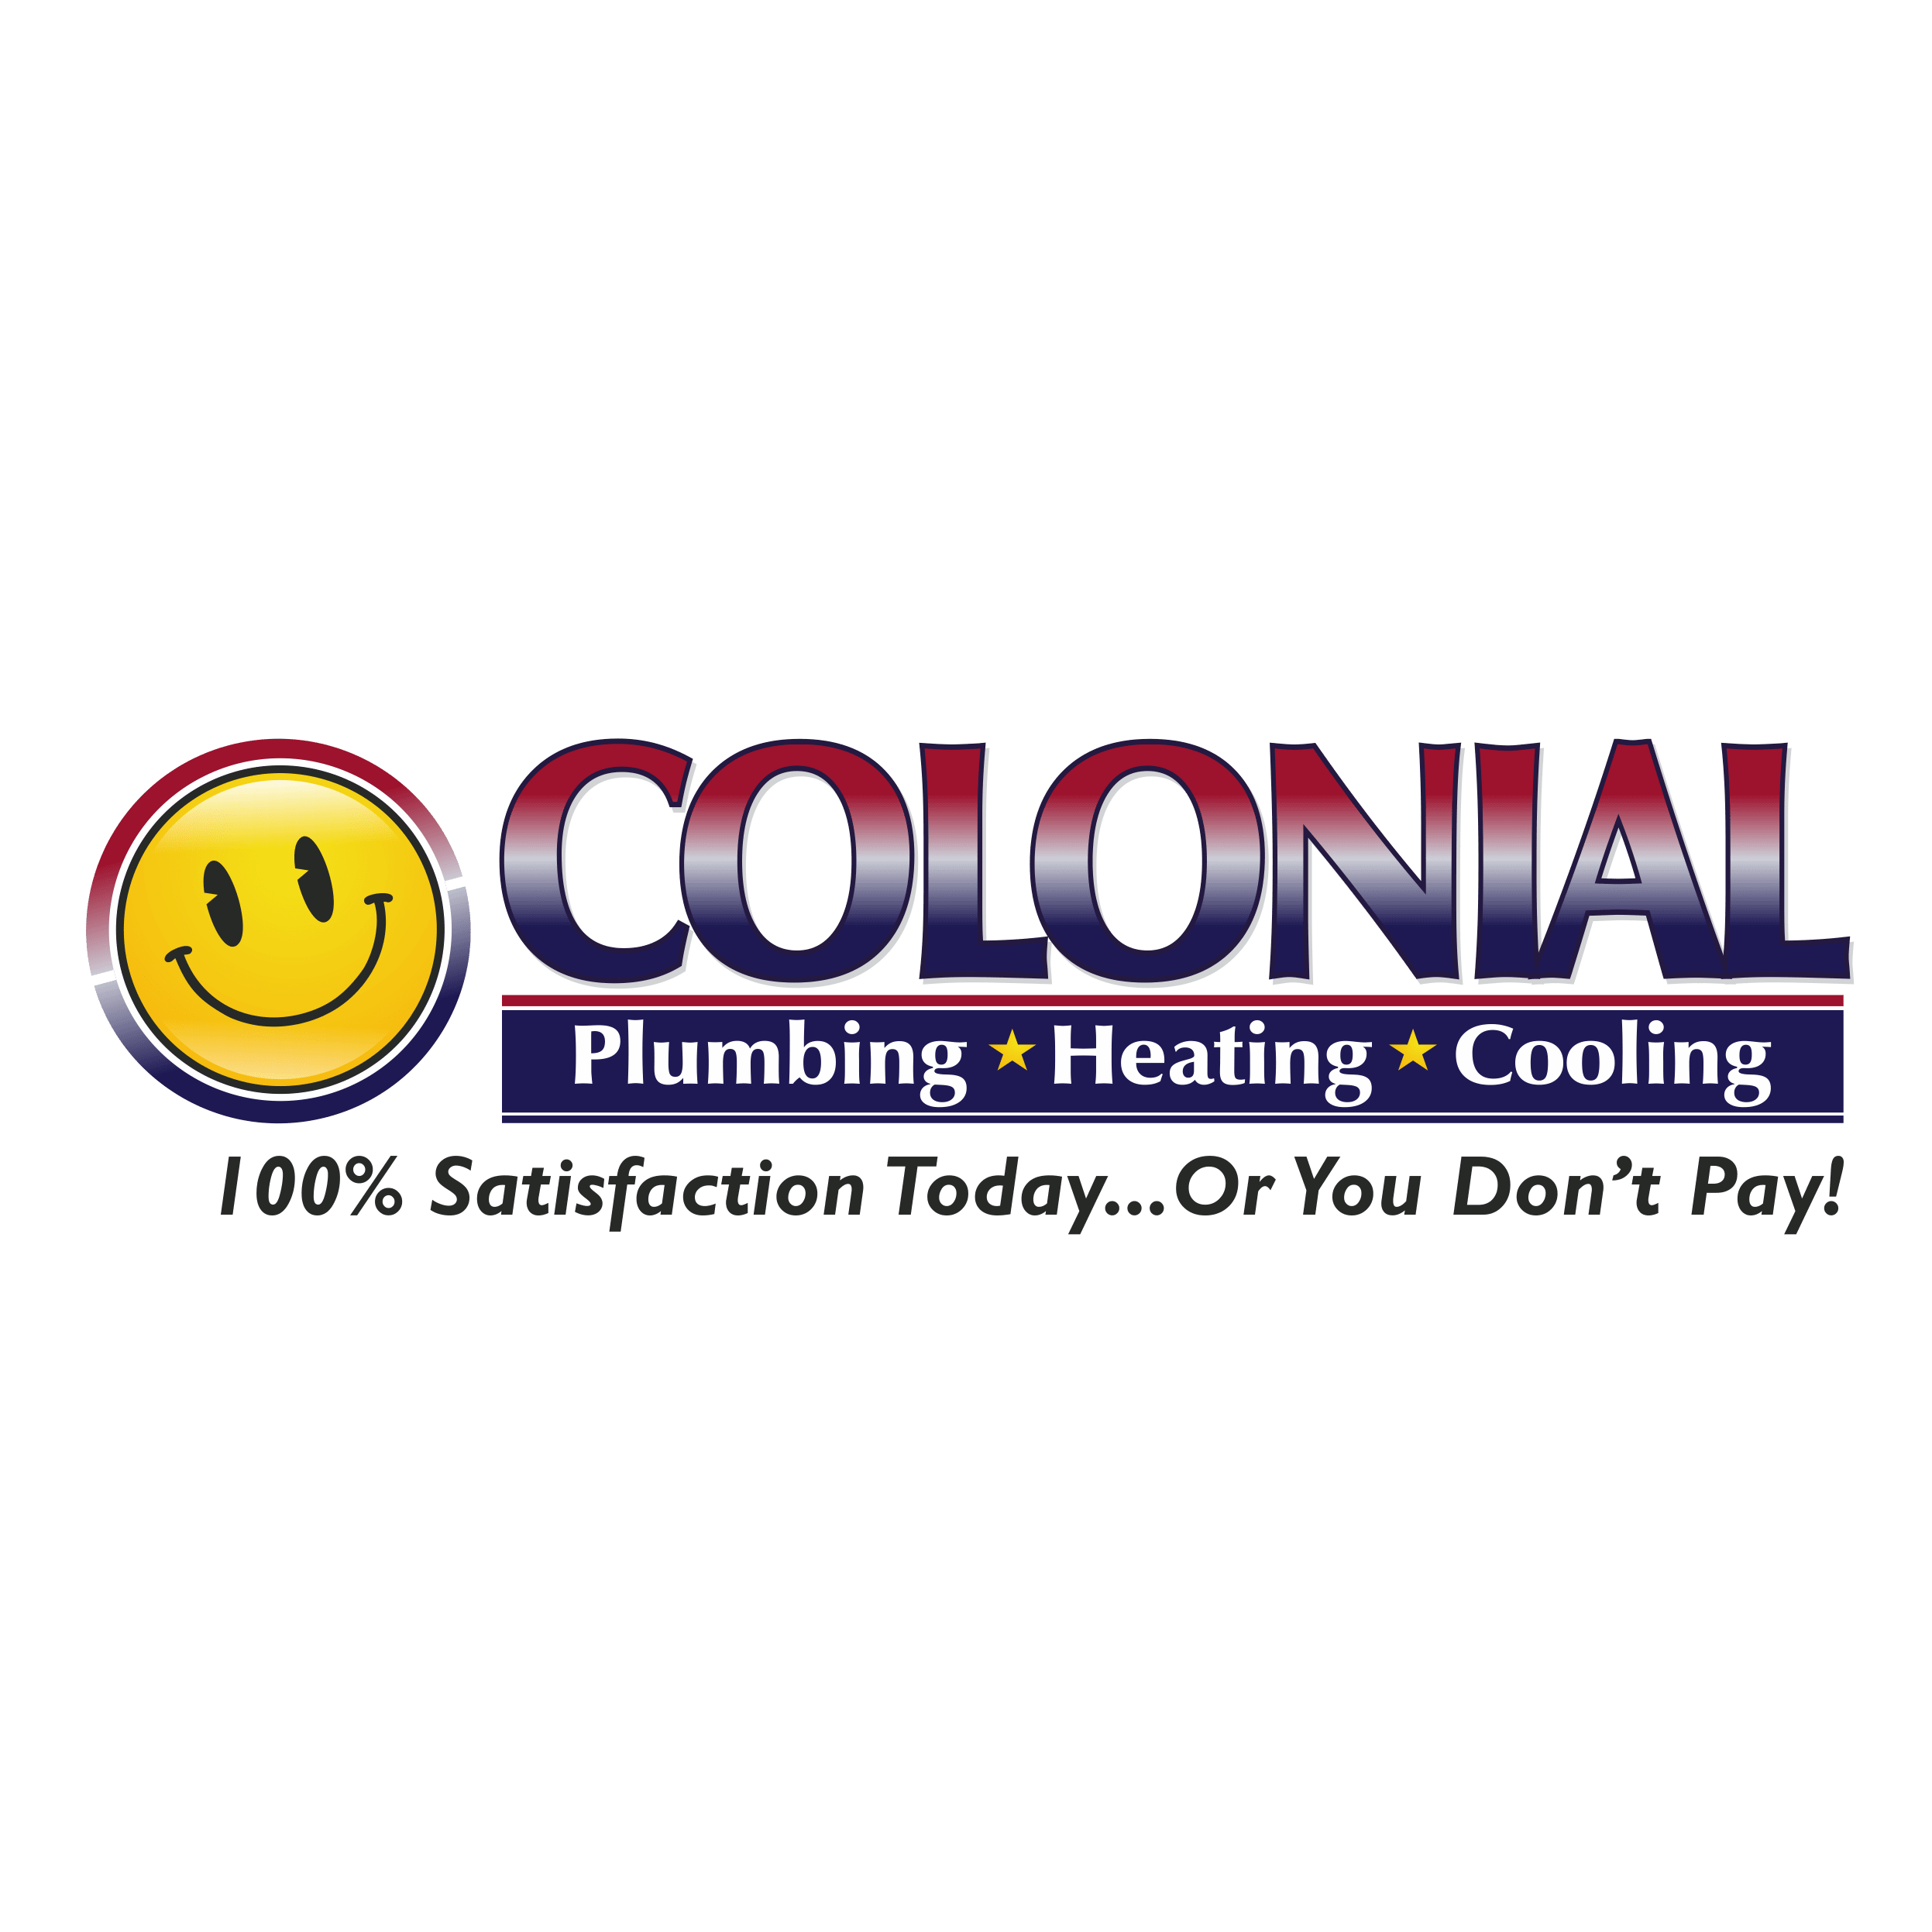 Colonial plumbing heating air conditioning manchester